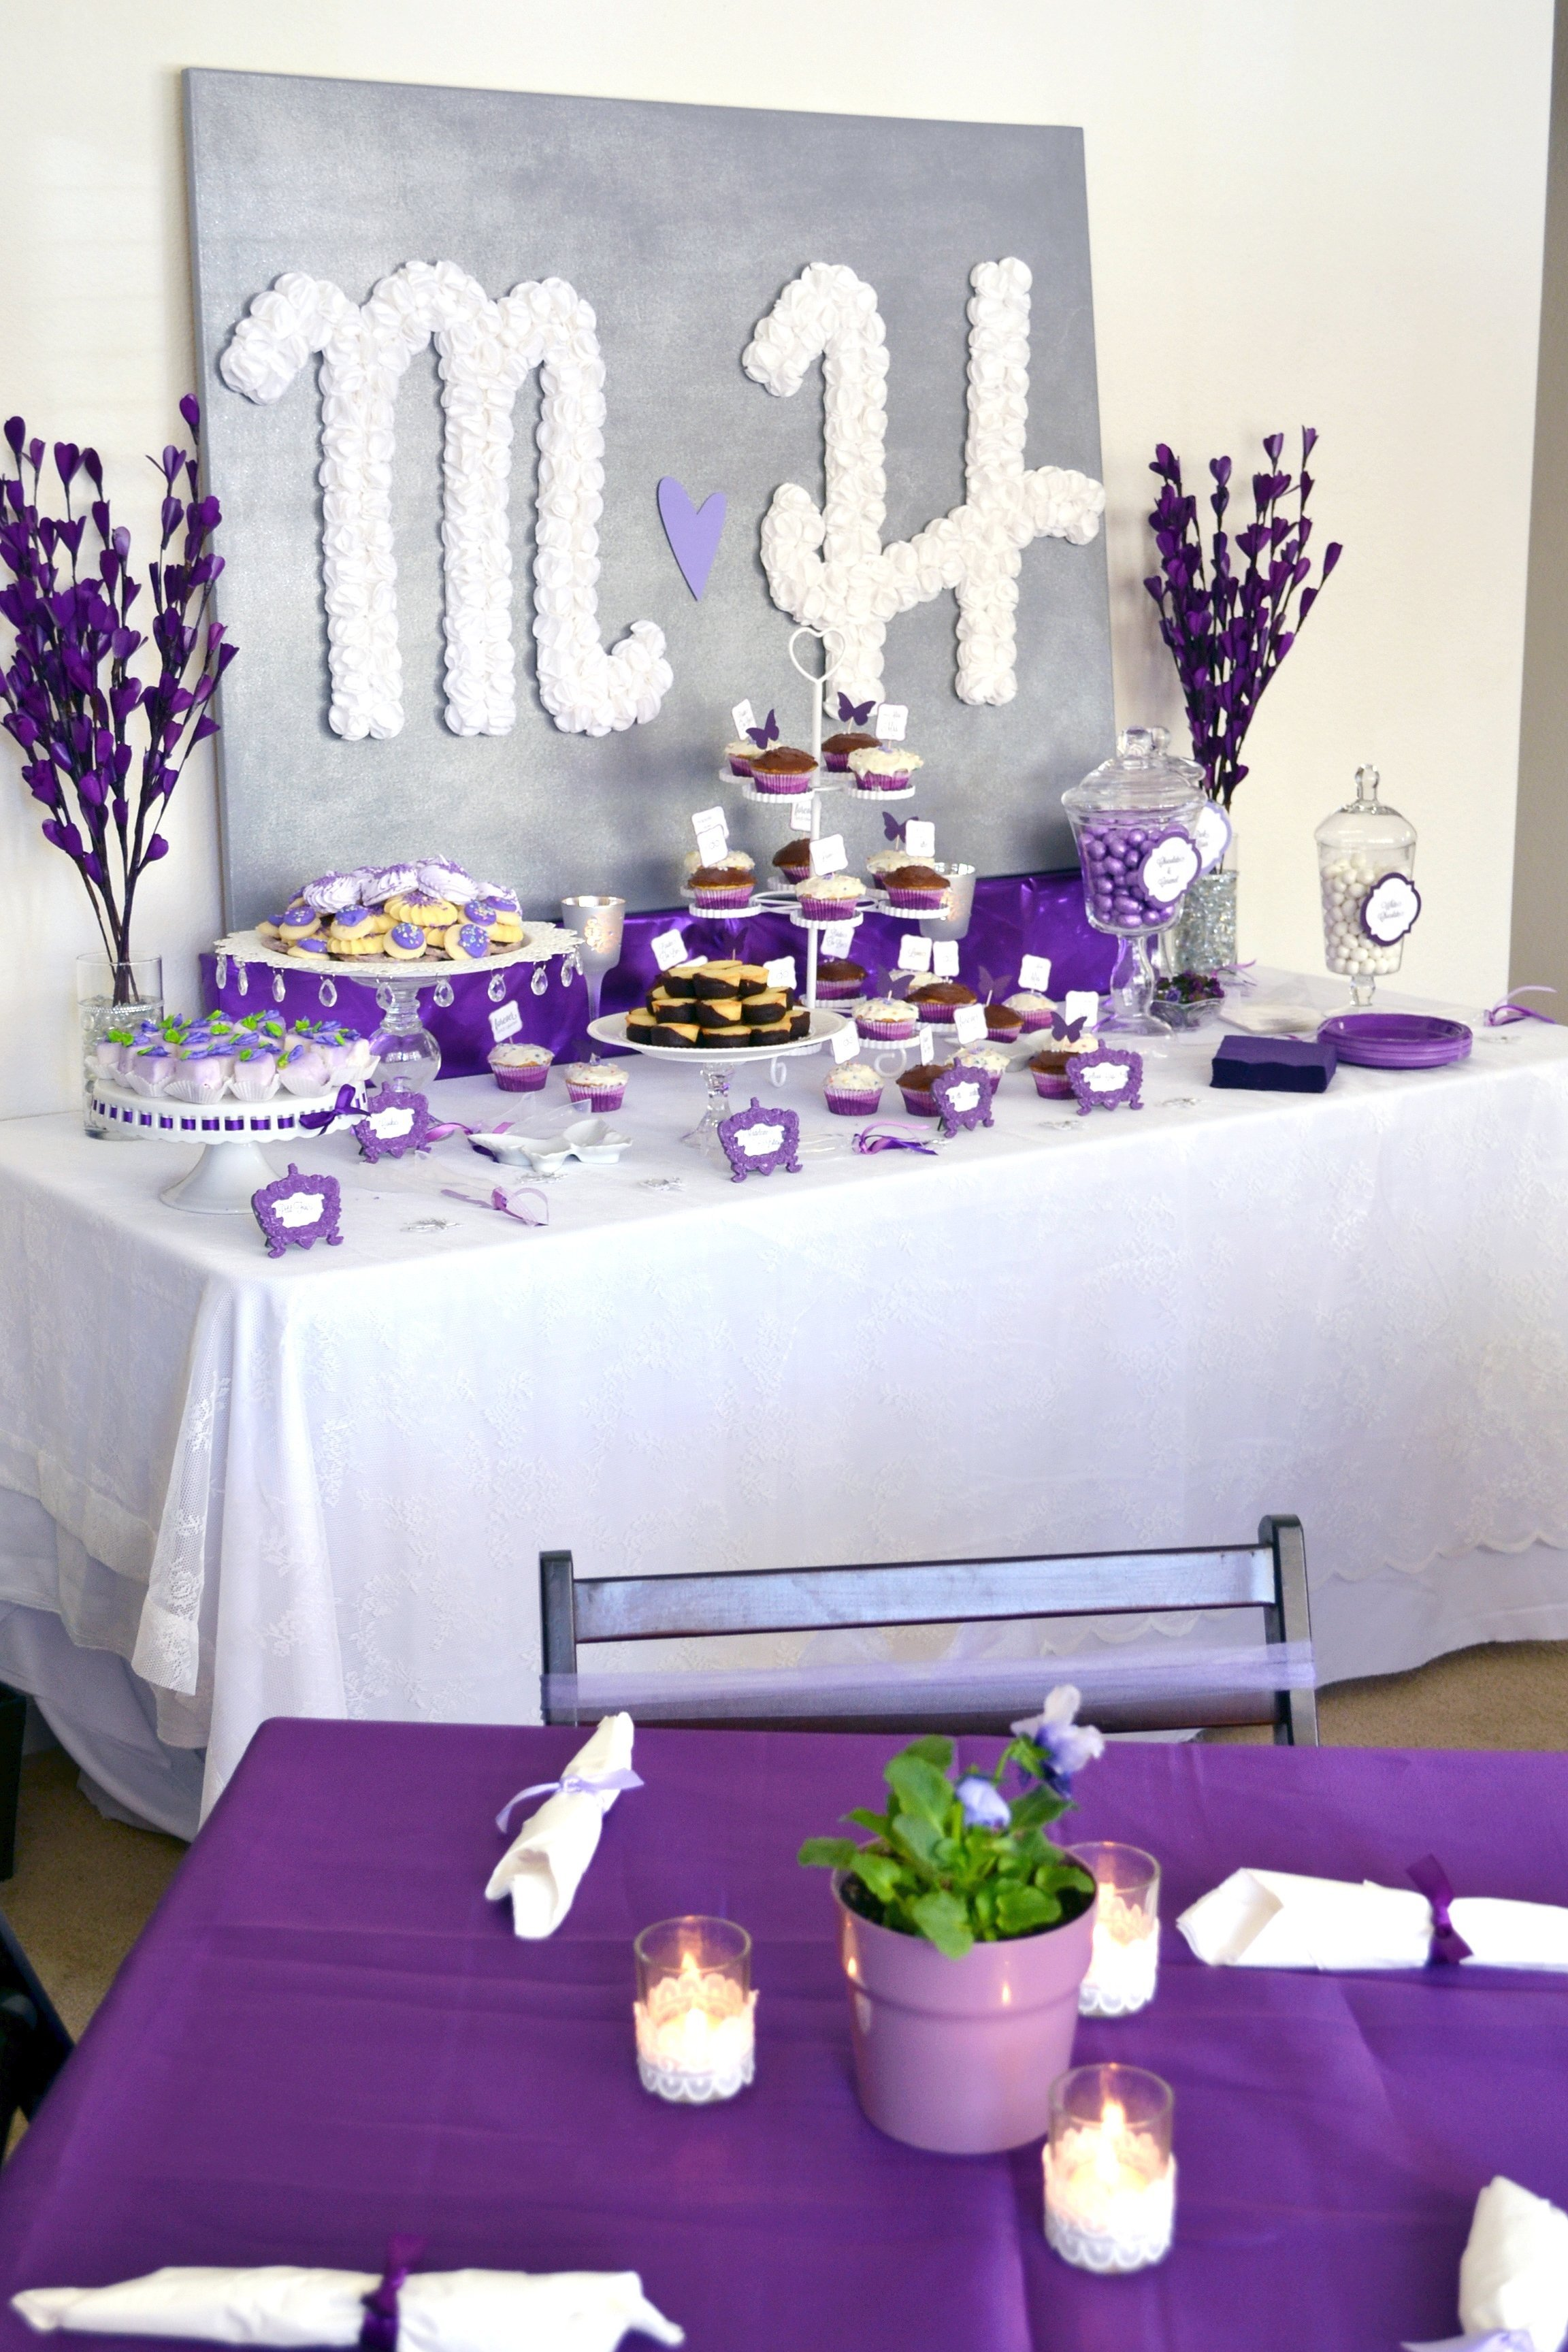 10 Stunning Decorating Ideas For Bridal Shower purple bridal shower decoration ideas all in home decor ideas 2020